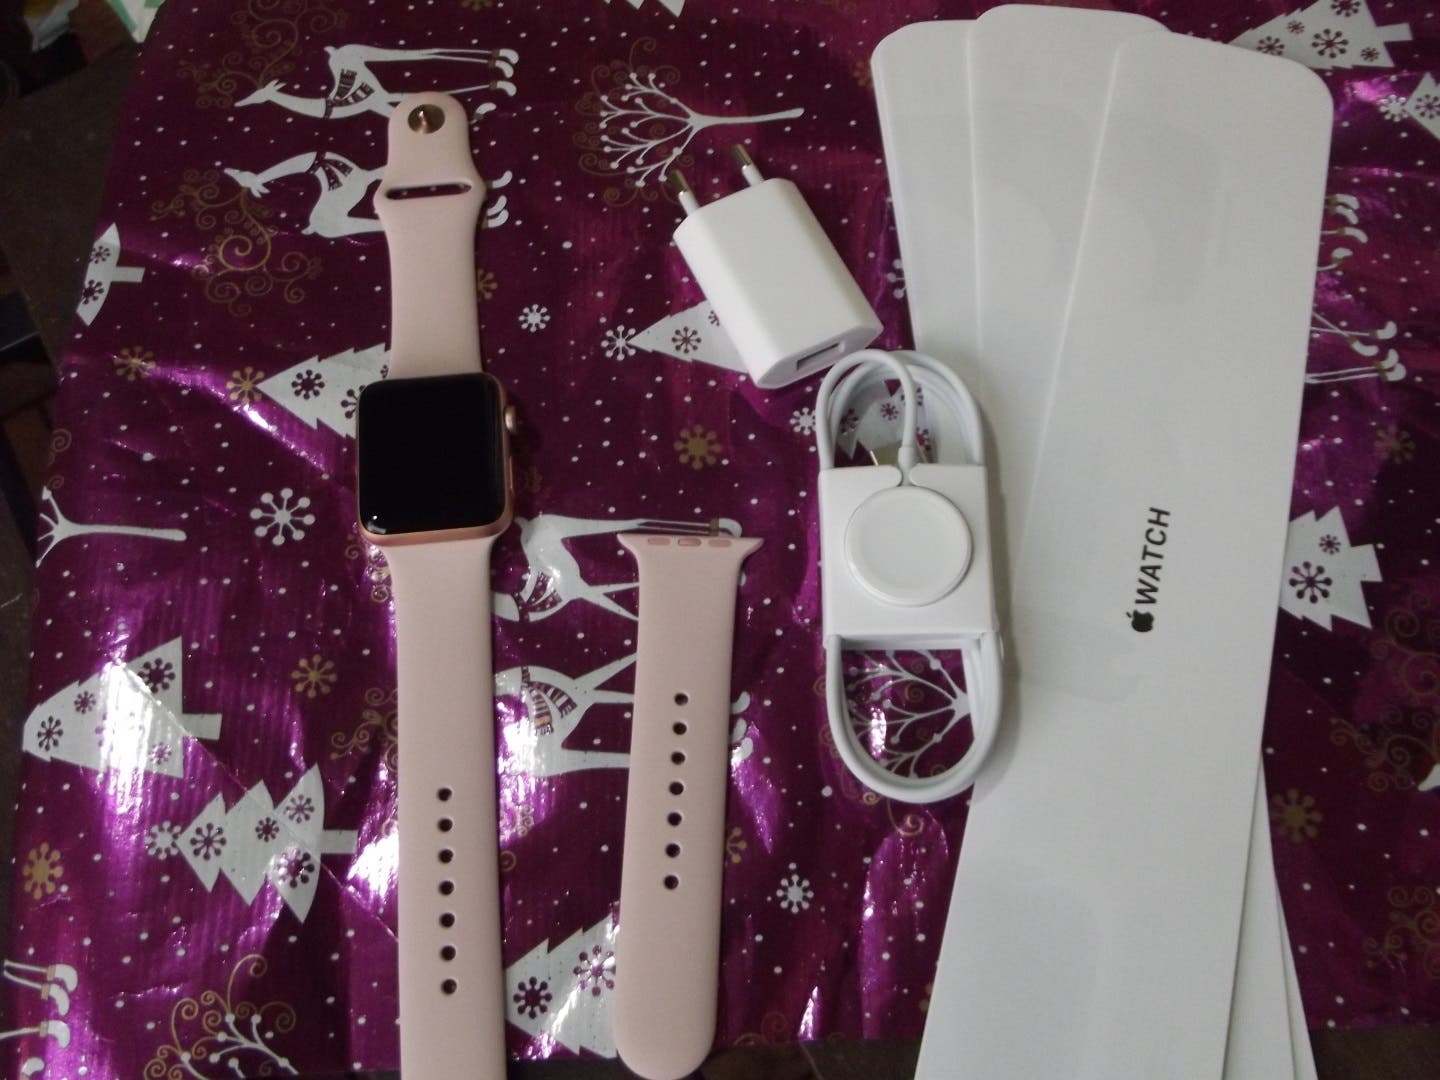 Apple Watch Series 3 Cellular (4)